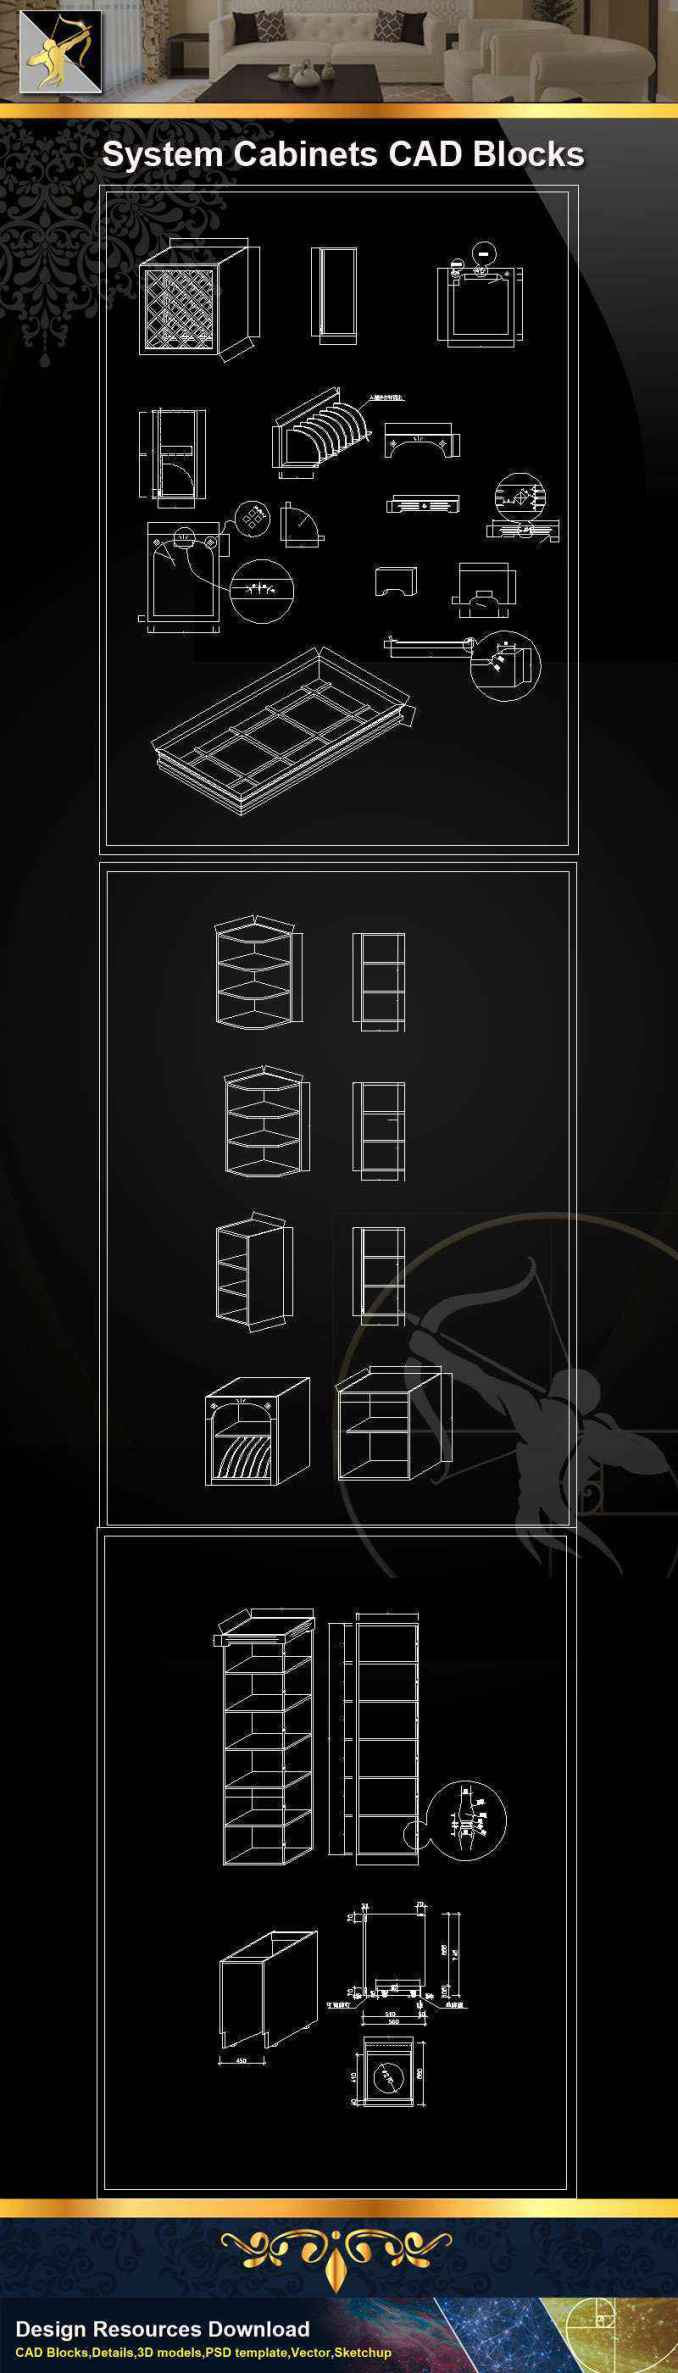 ★【 System Cabinets CAD Drawings V 3】@Autocad Blocks,Drawings,CAD  Details,Elevation